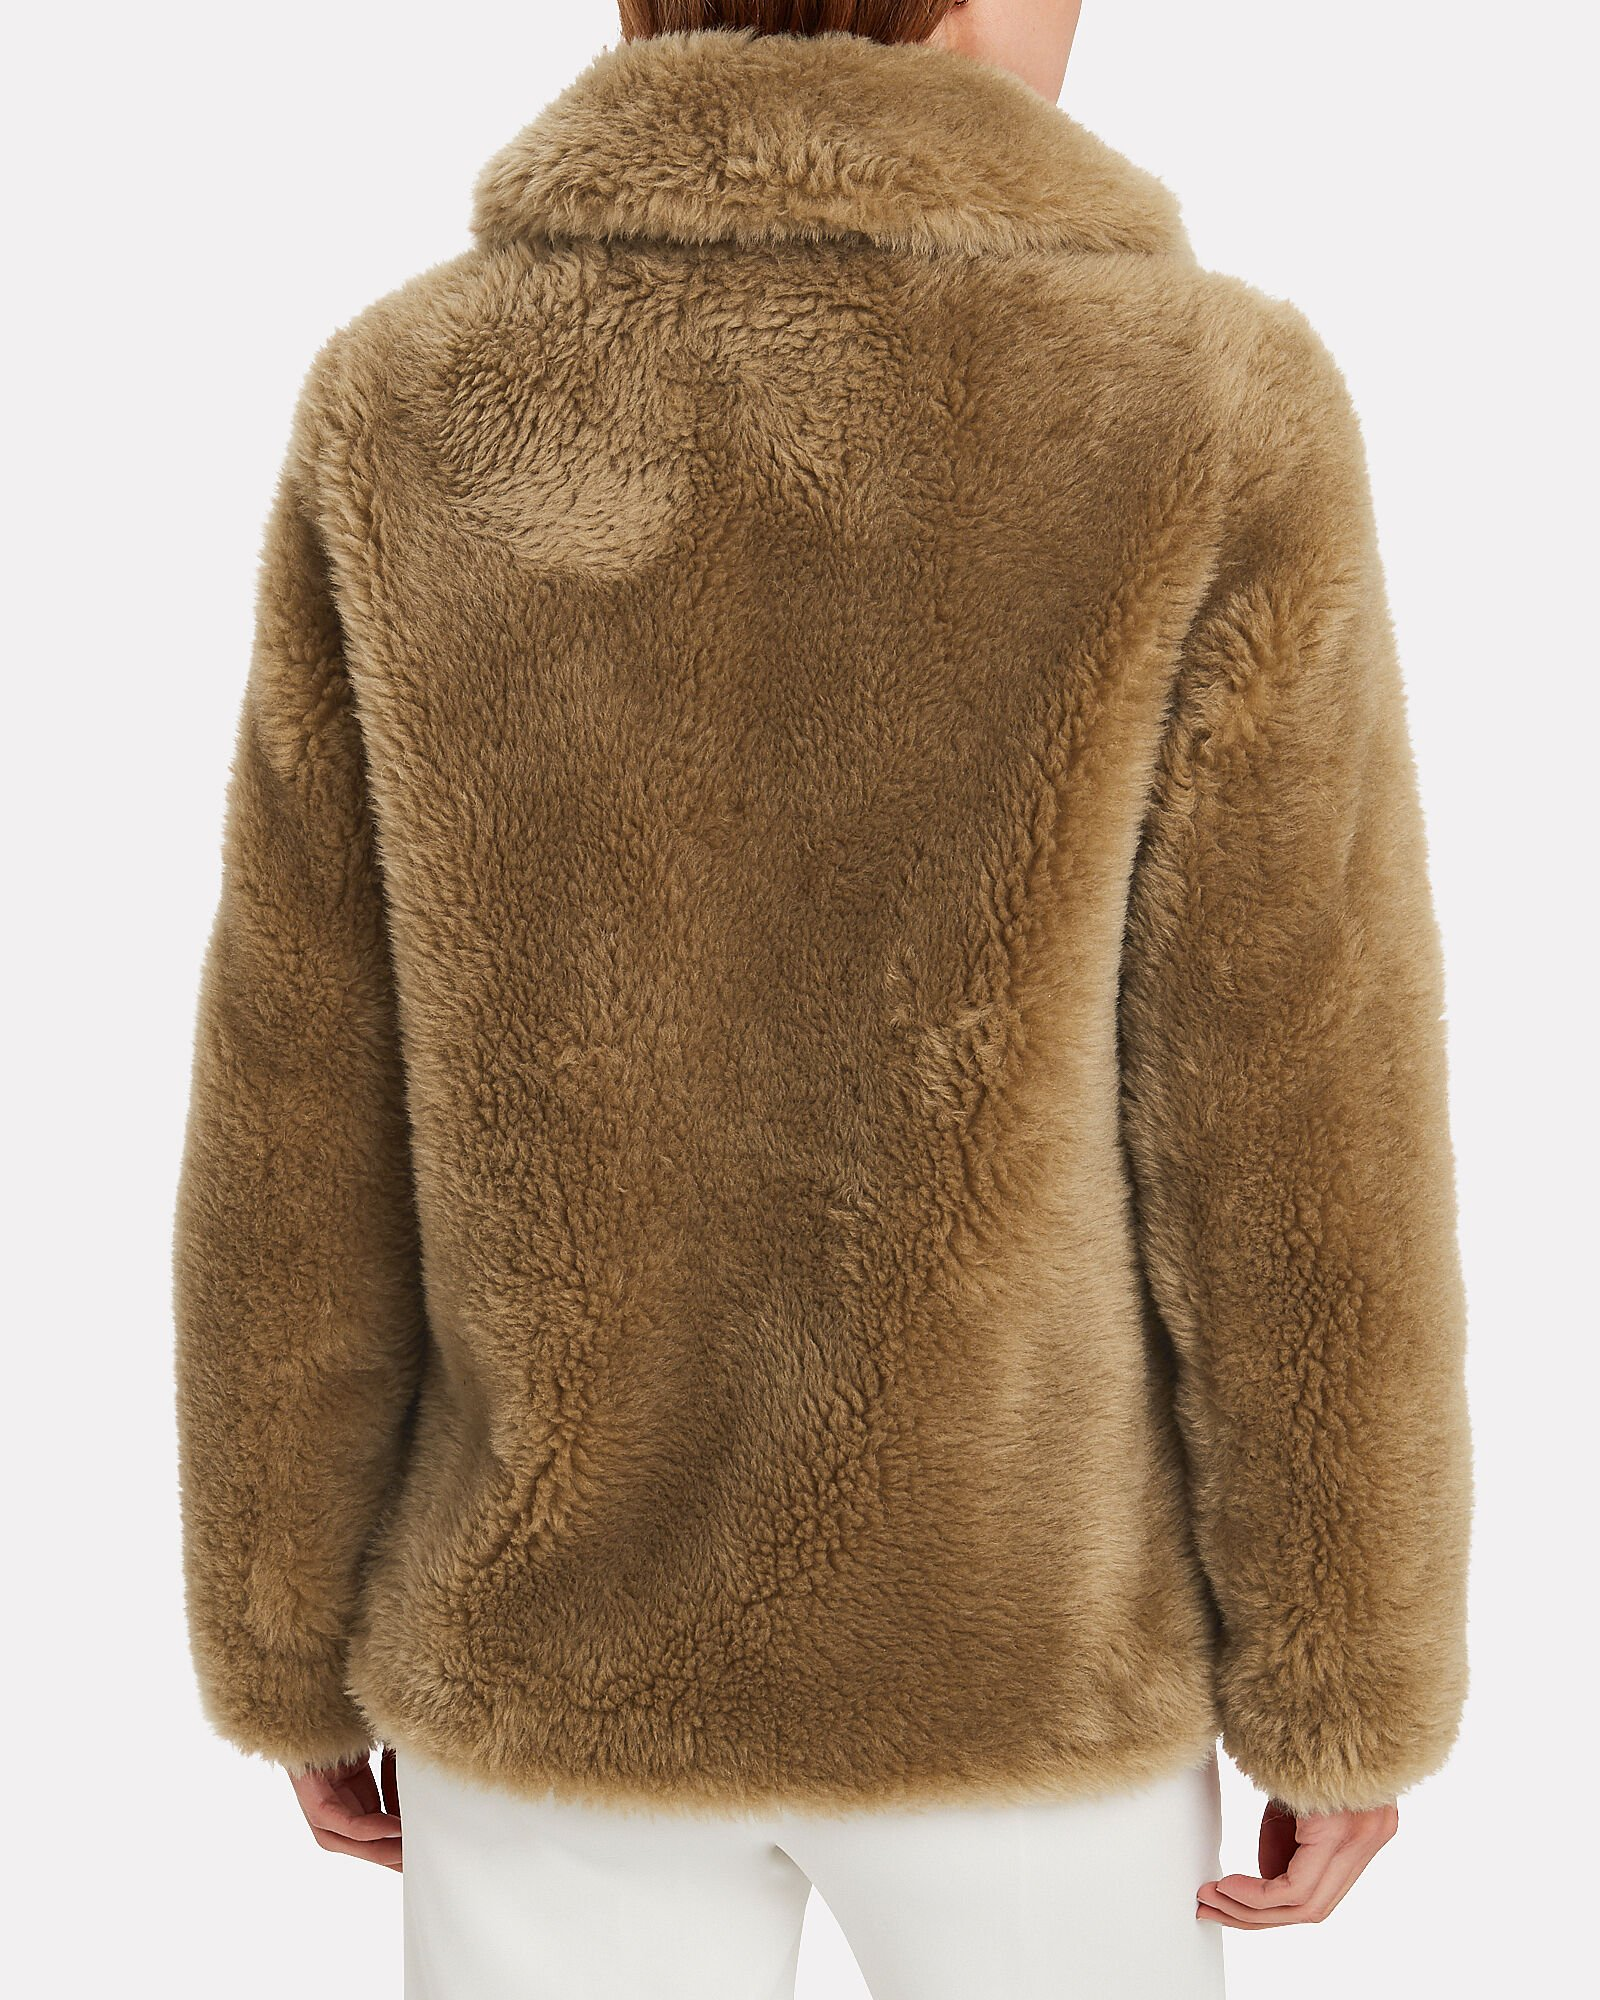 Curly Shearling Teddy Jacket, BEIGE, hi-res